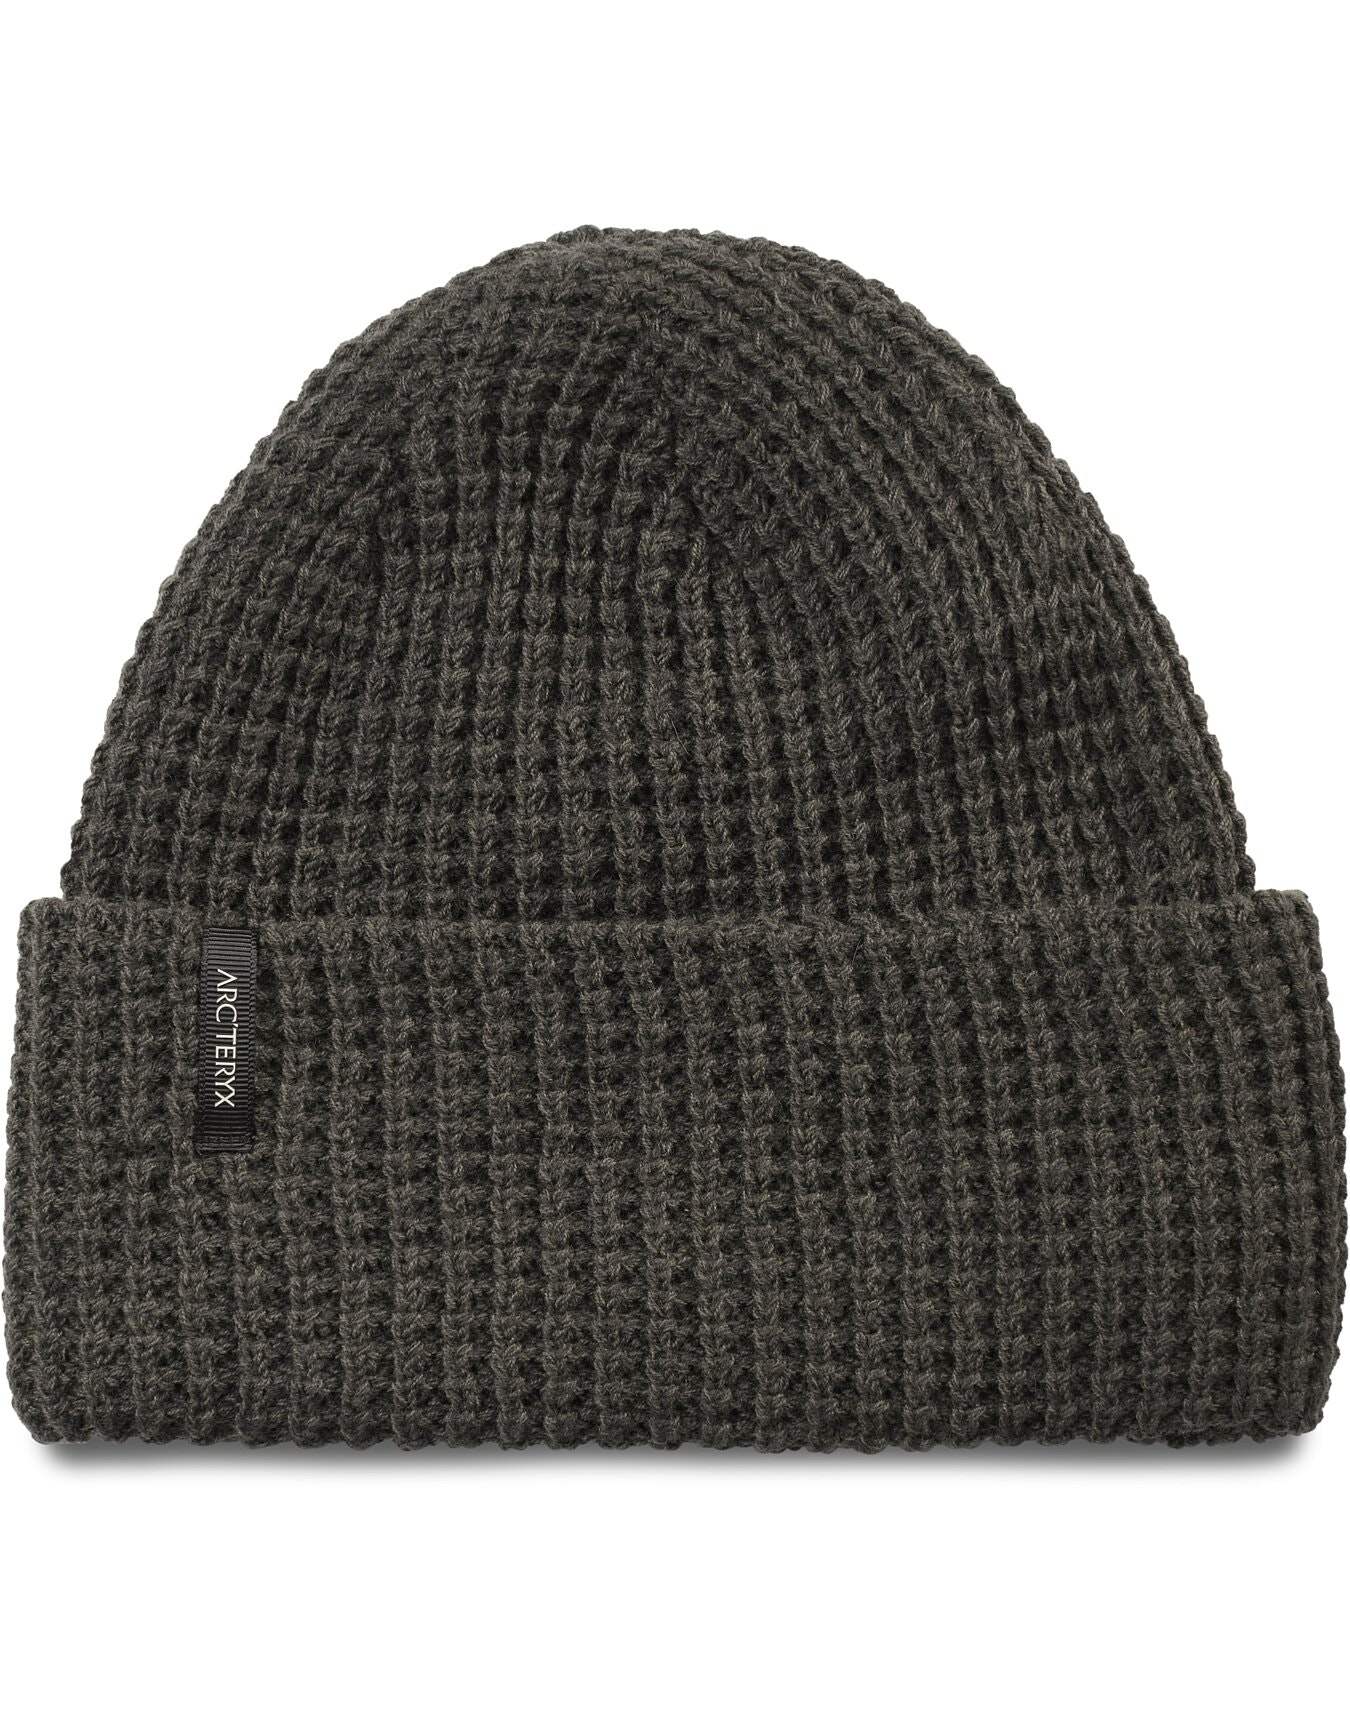 Chunky Knit Toque Moonshadow Heather